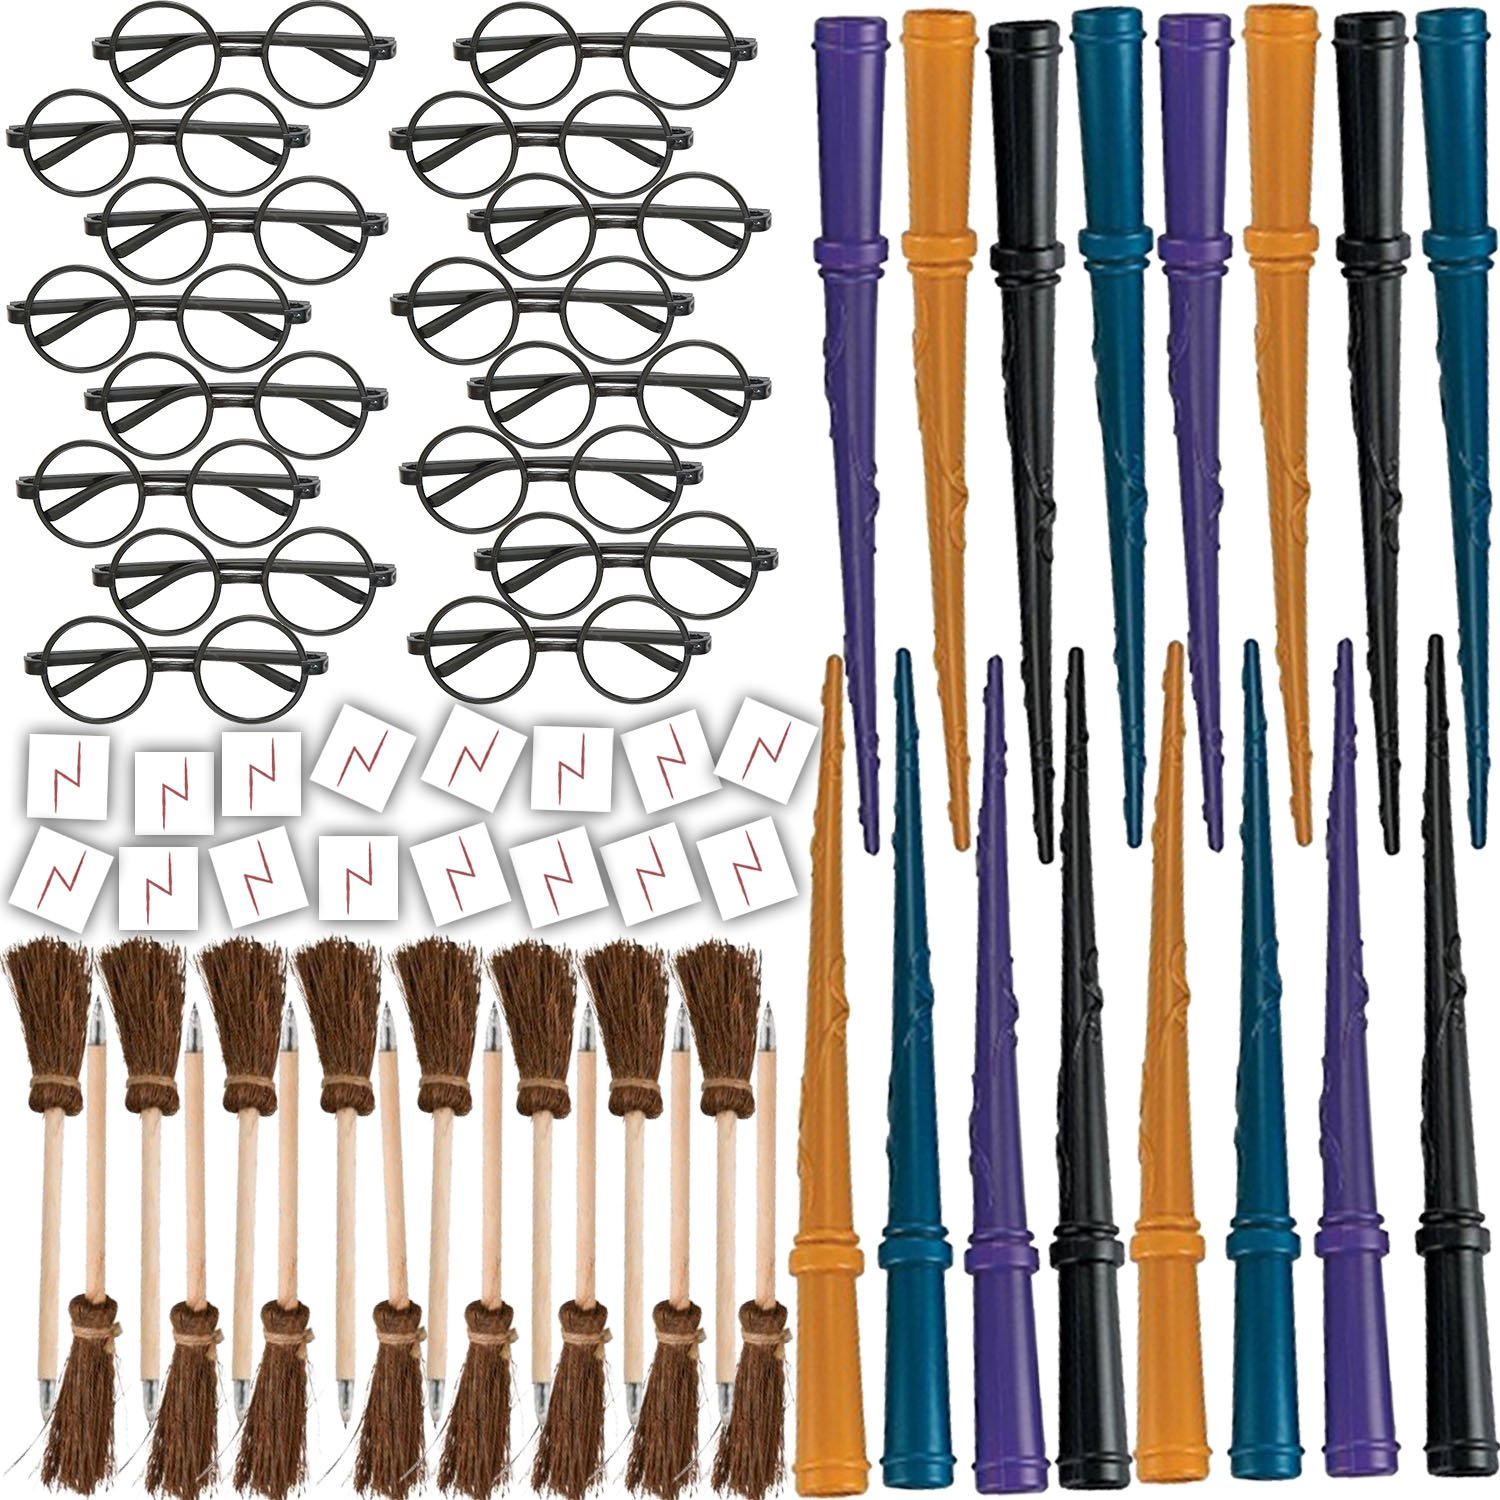 Wizard Party Favors for 16 - Includes Broom Pens, Wands, Glasses, and Lightning Scar Tattoos - Perfect for a Wizard School Theme Birthday Party (16 of each)